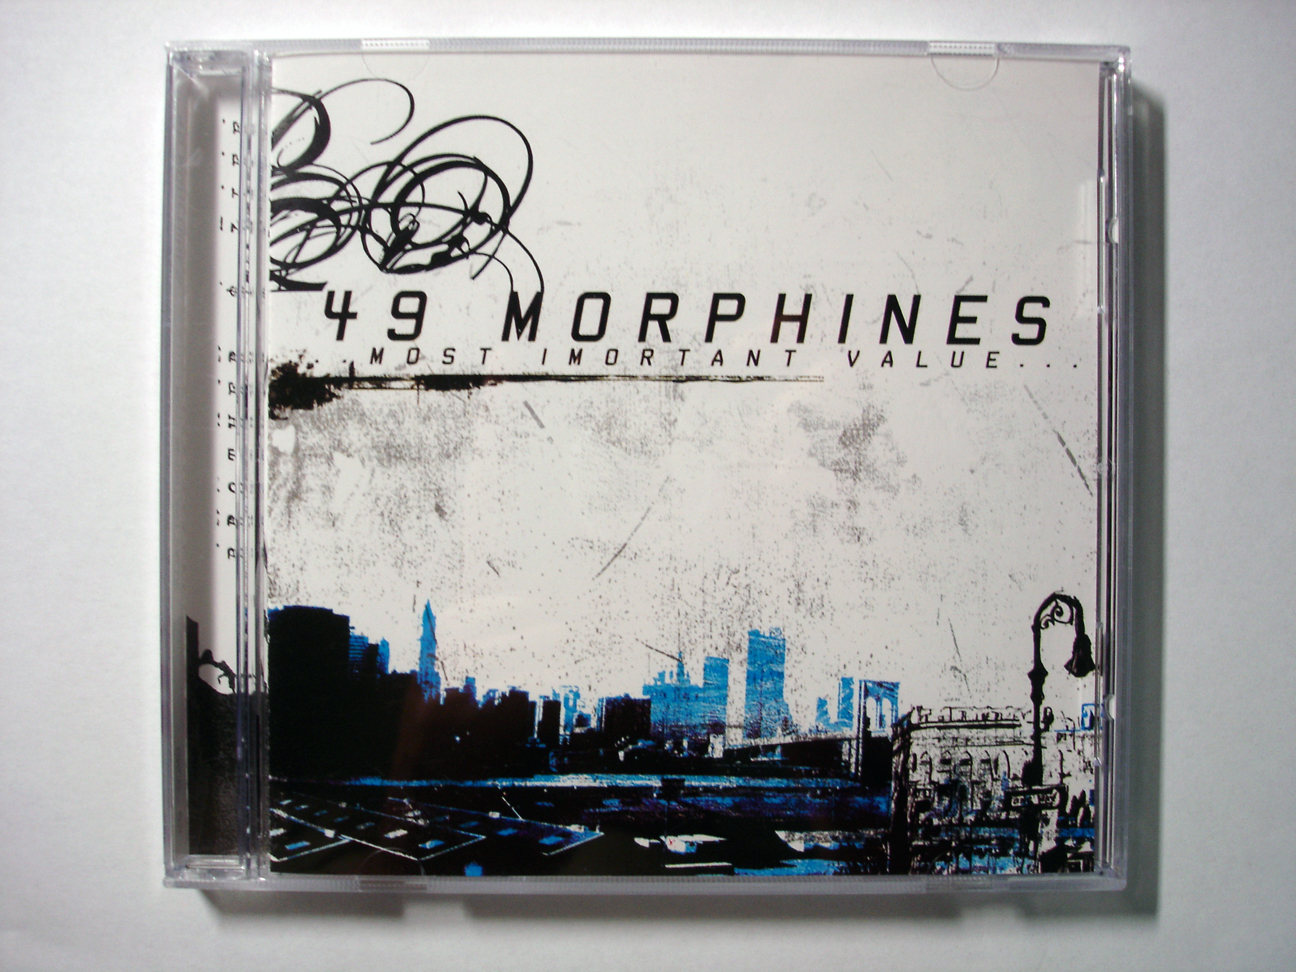 (ep) Most Important Value - 49 Morphines